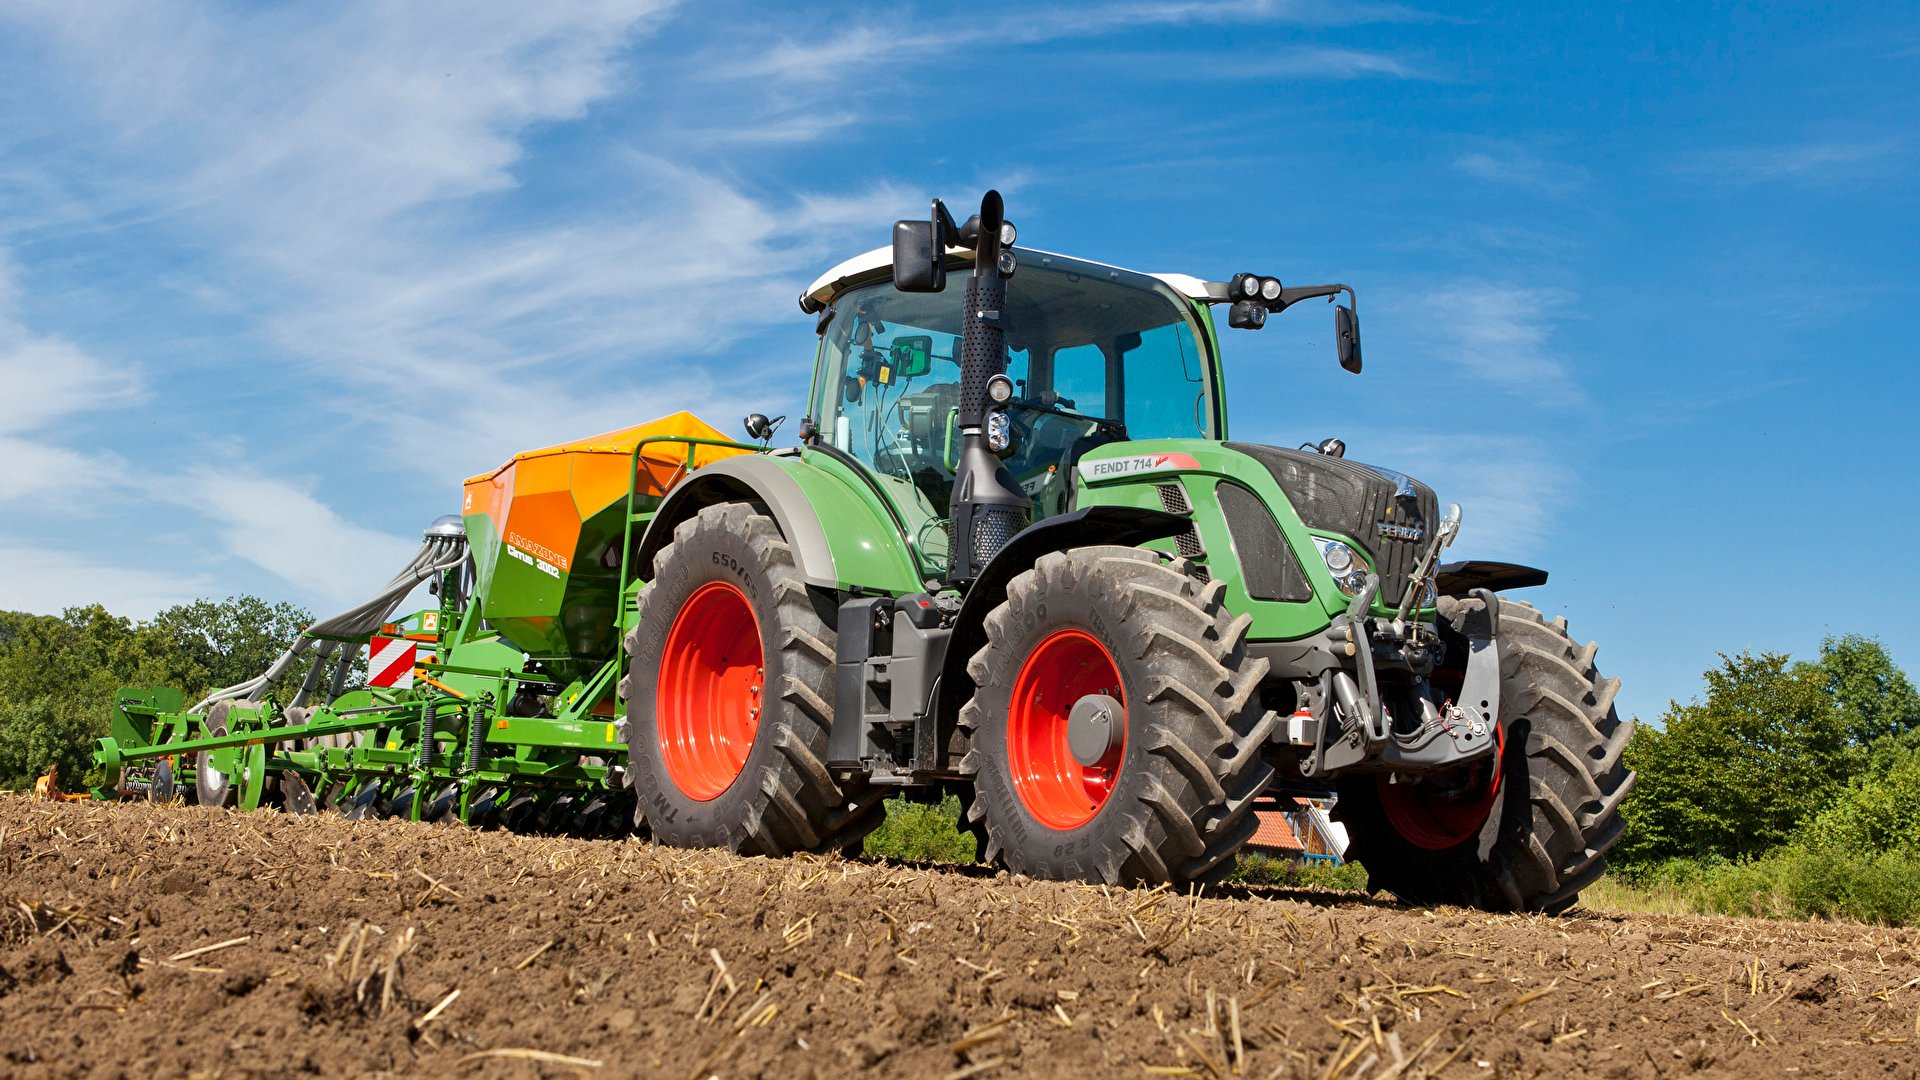 Image Agricultural machinery Tractor 2011 17 Fendt 714 1920x1080 1920x1080